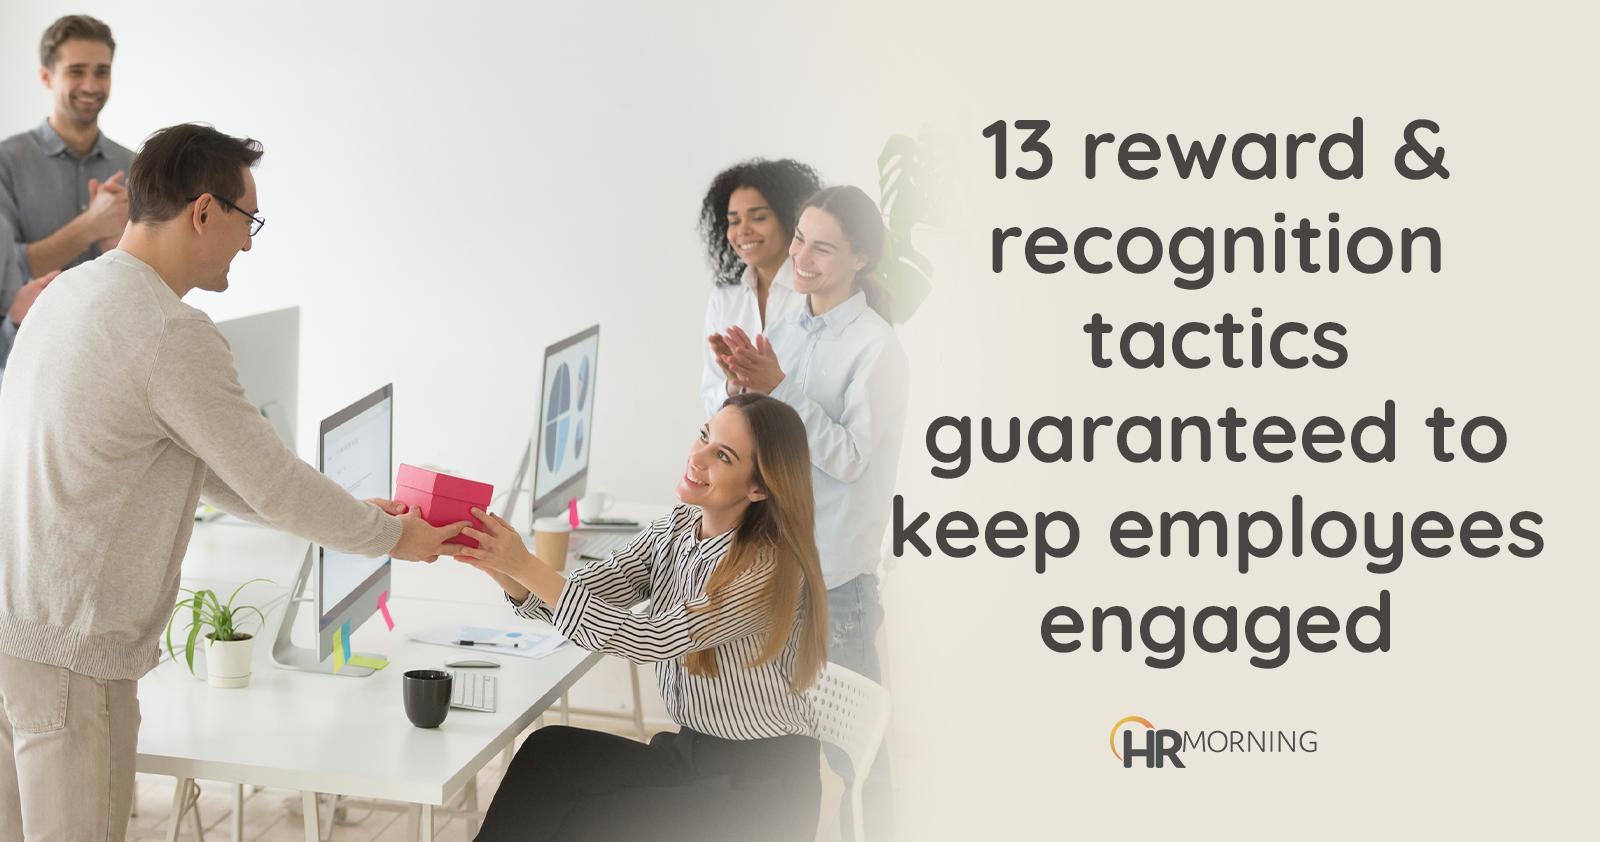 13 reward & recognition tacktics guaranteed to keep employees engaged